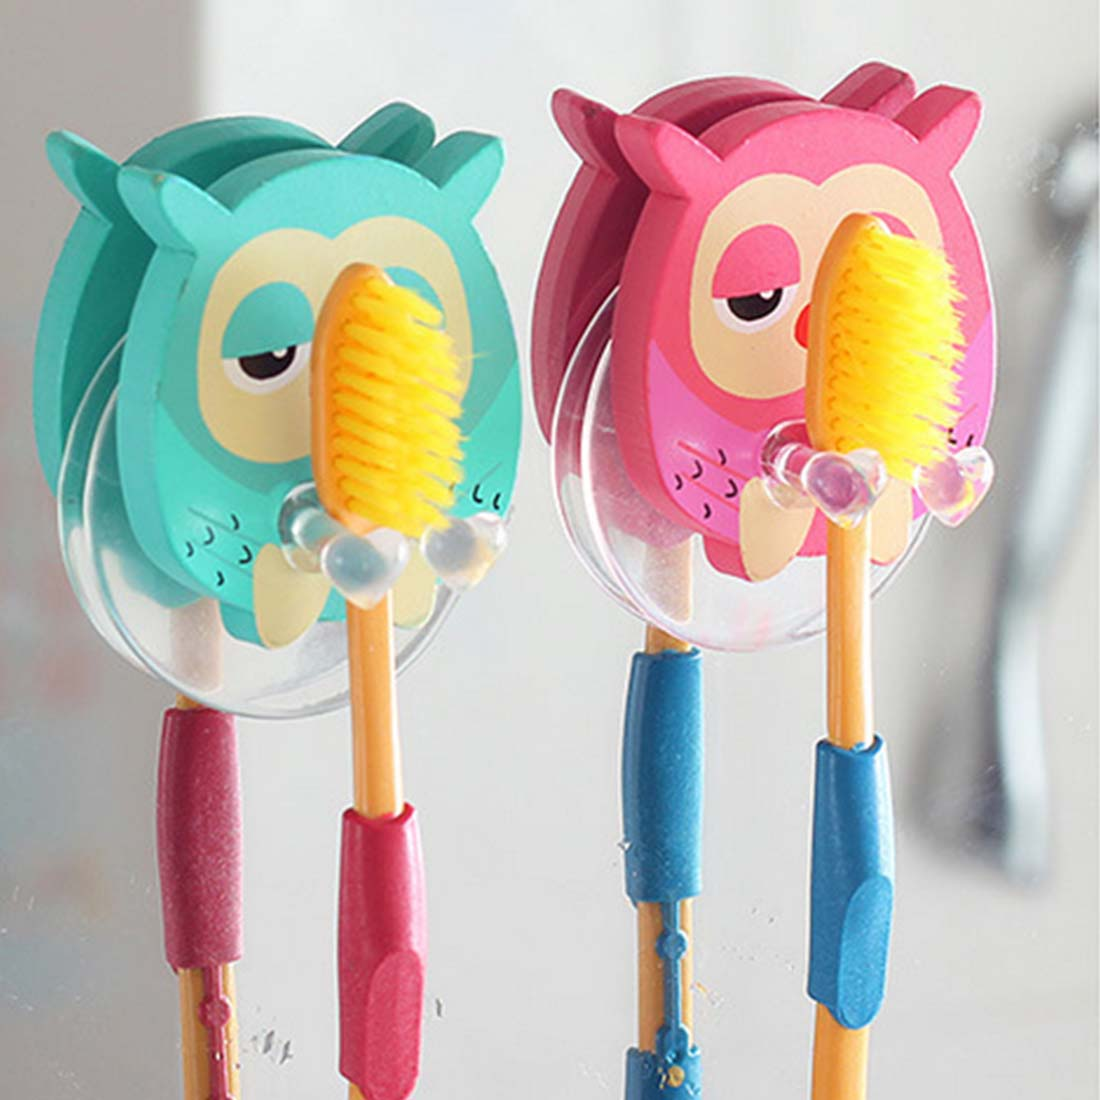 Cute Minion Cartoon Suction Cup Toothbrush Holder Bathroom Accessories 3color